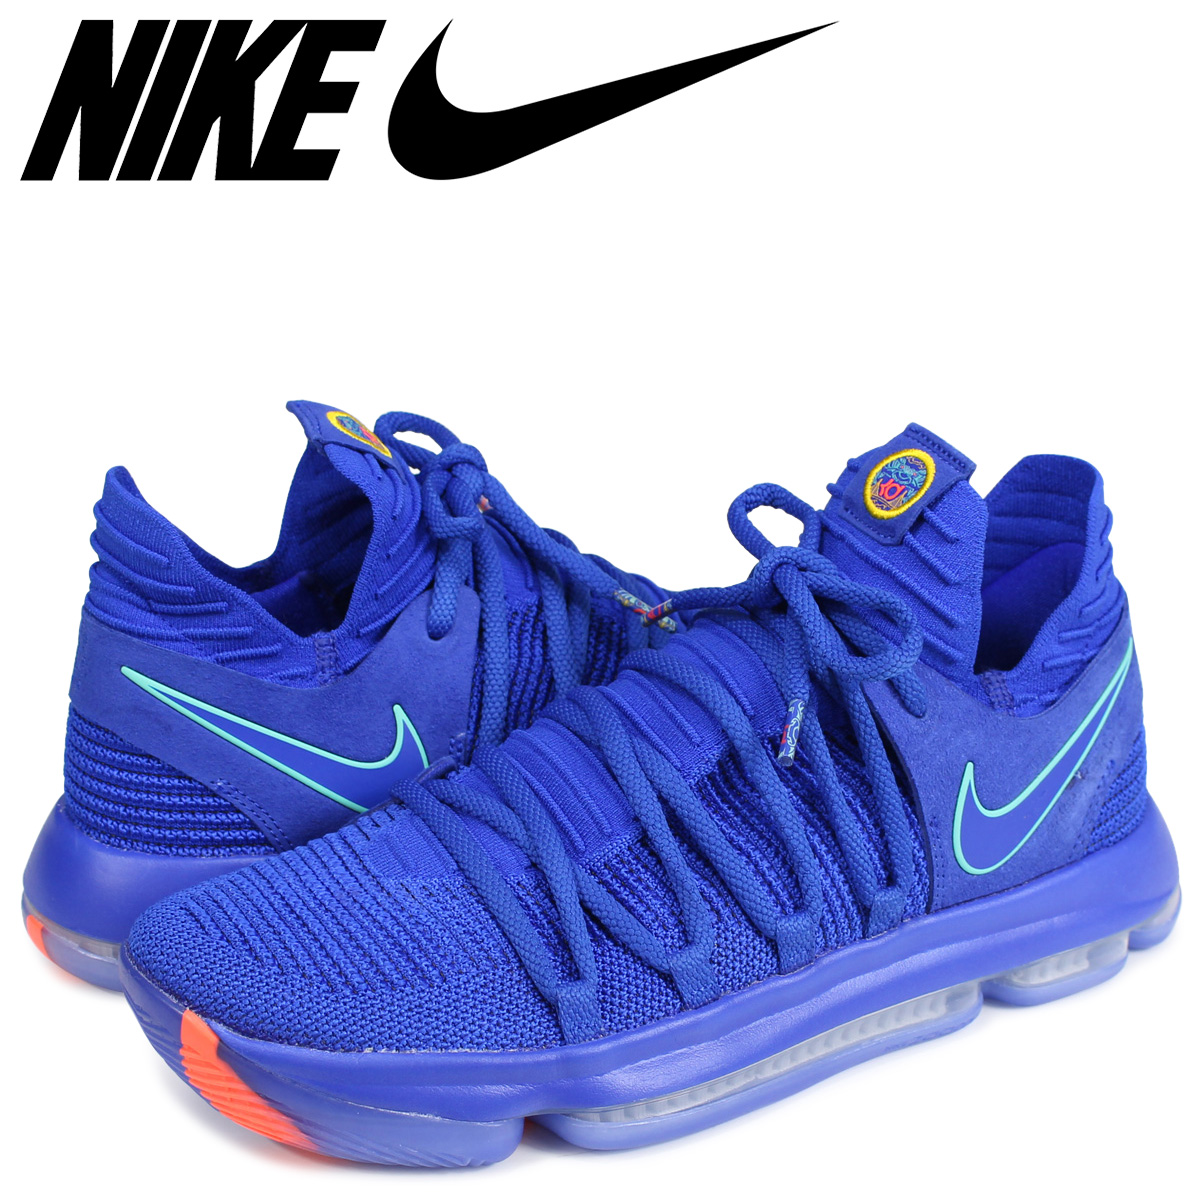 save off d7eb9 f4bf5 NIKE Nike KD 10 sneakers men ZOOM KD 10 897,816-402 Kevin Durant blue